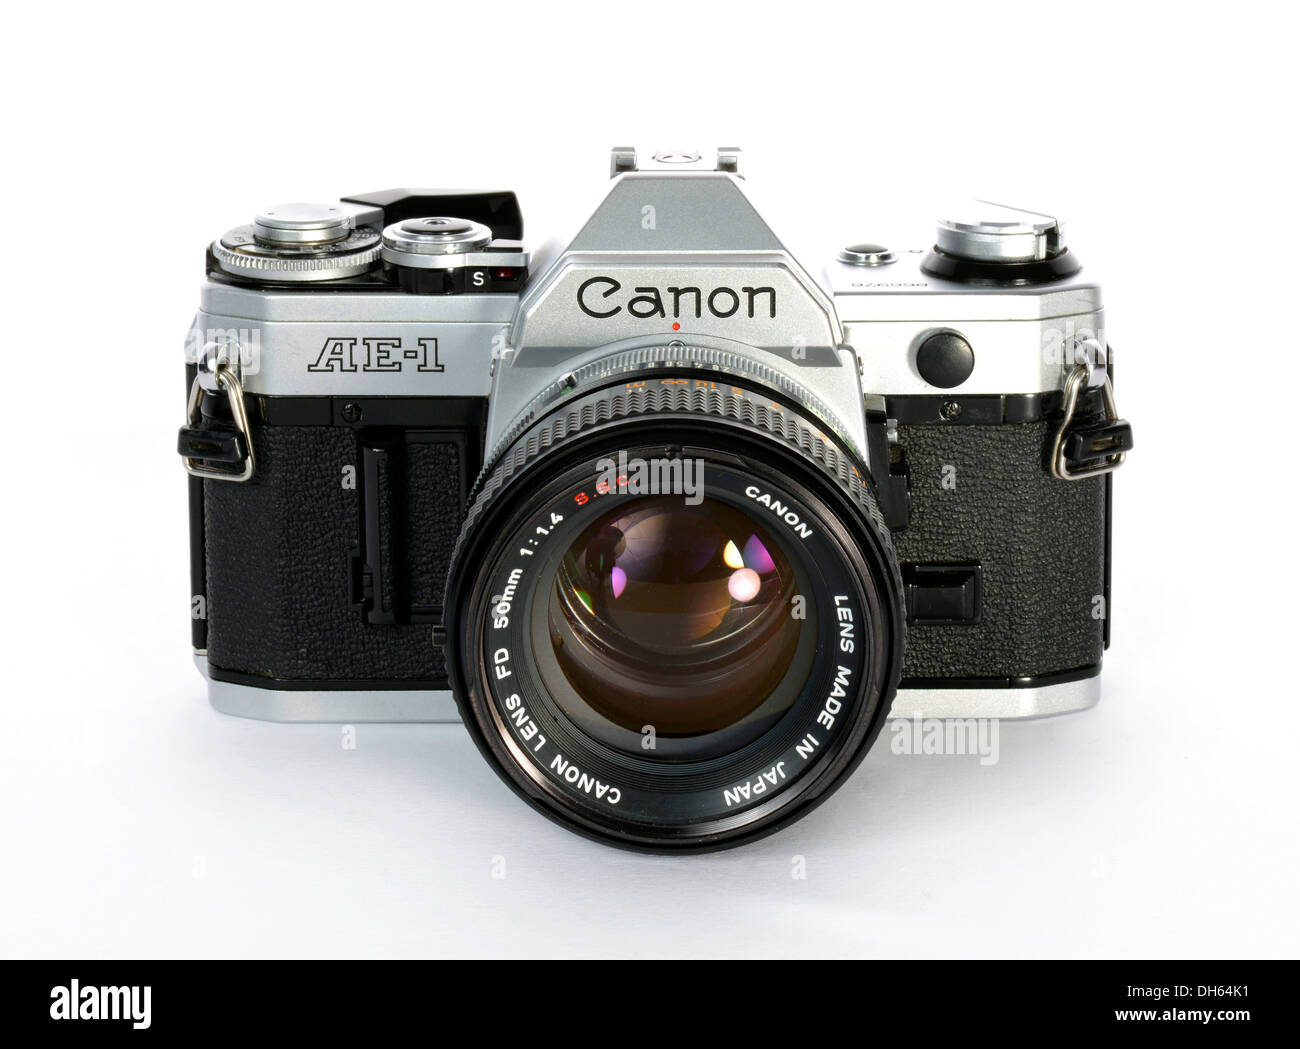 Analogue SLR Canon AE-1 with a FD 50mm 1:1.4 S.S.C. lens, milestone in film camera history - Stock Image